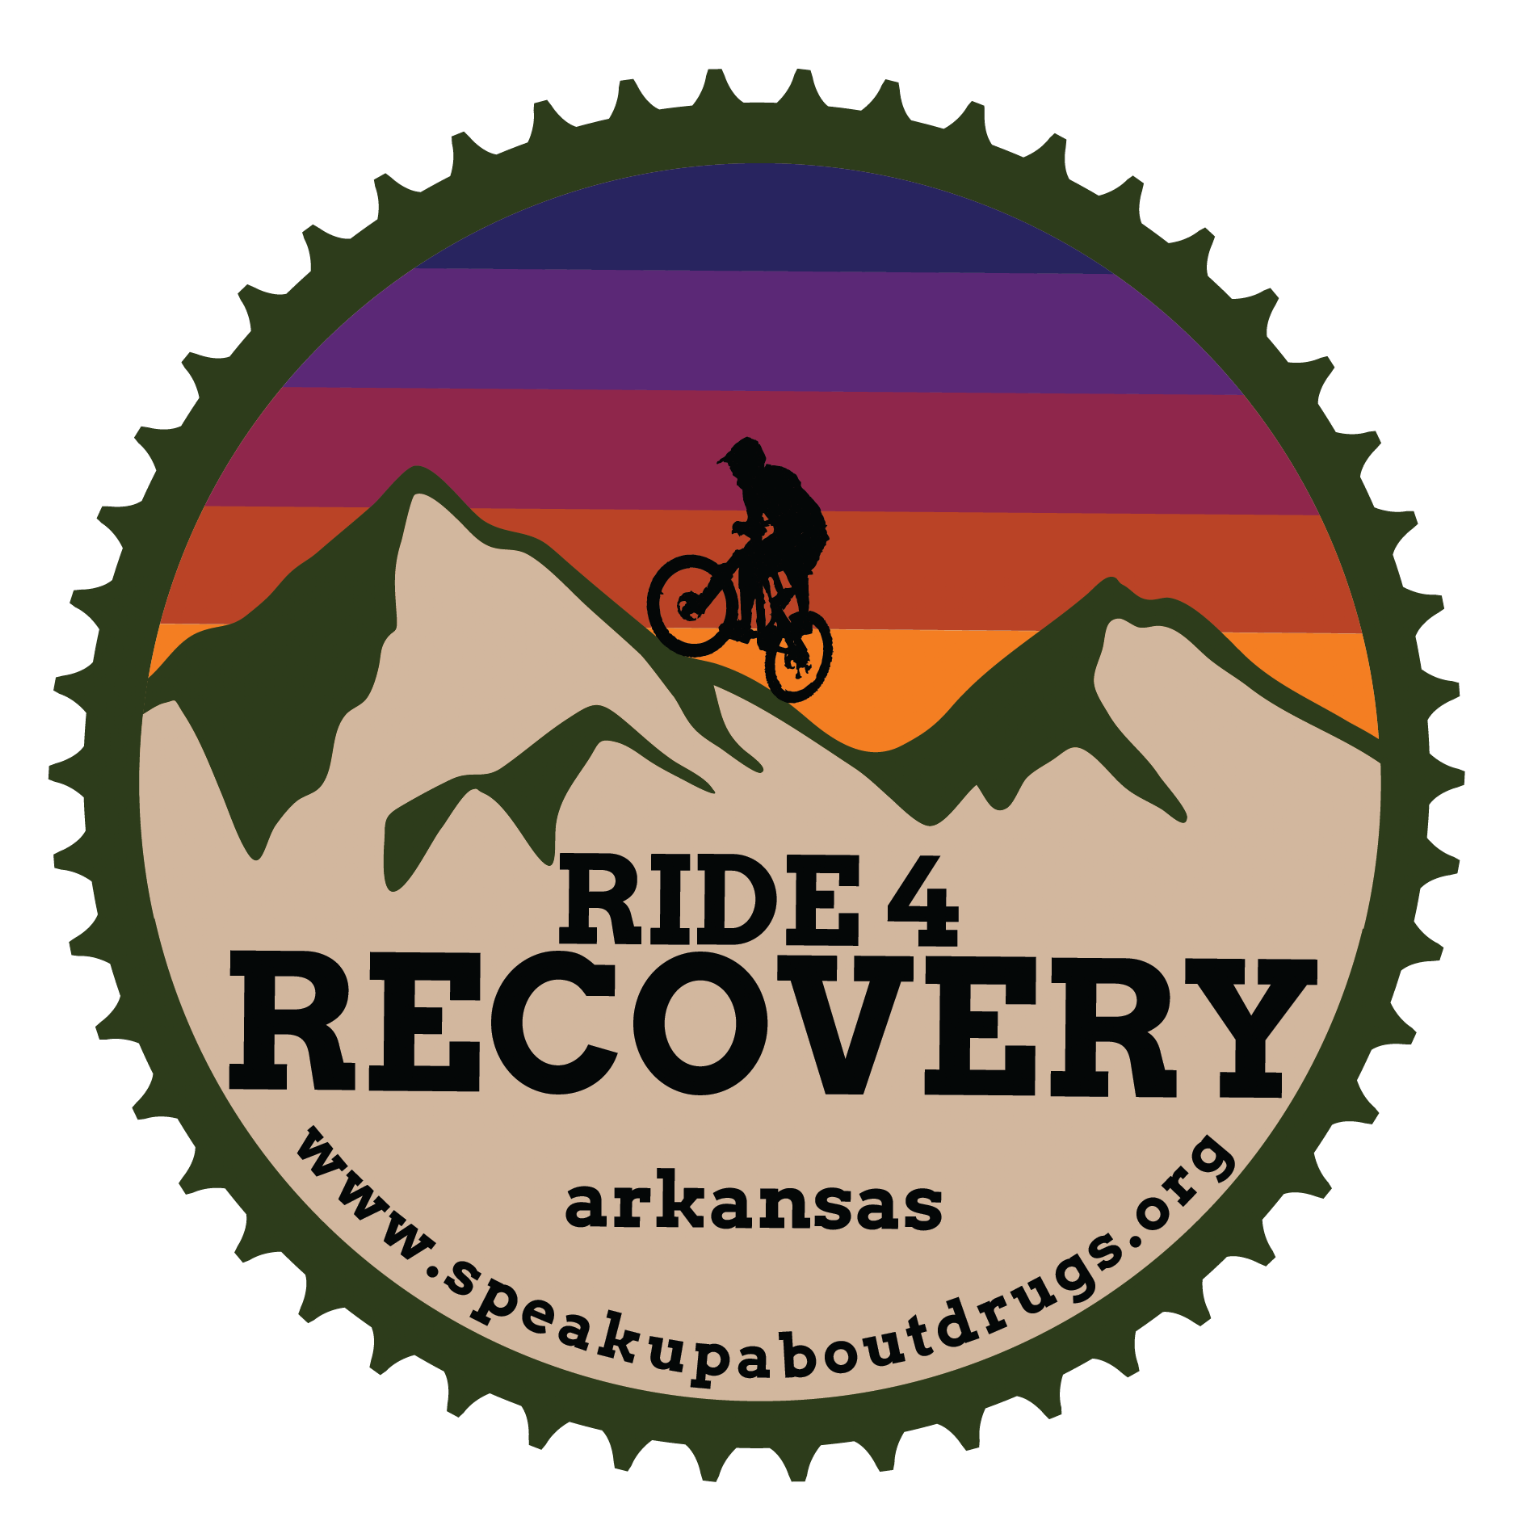 Ride 4 recovery